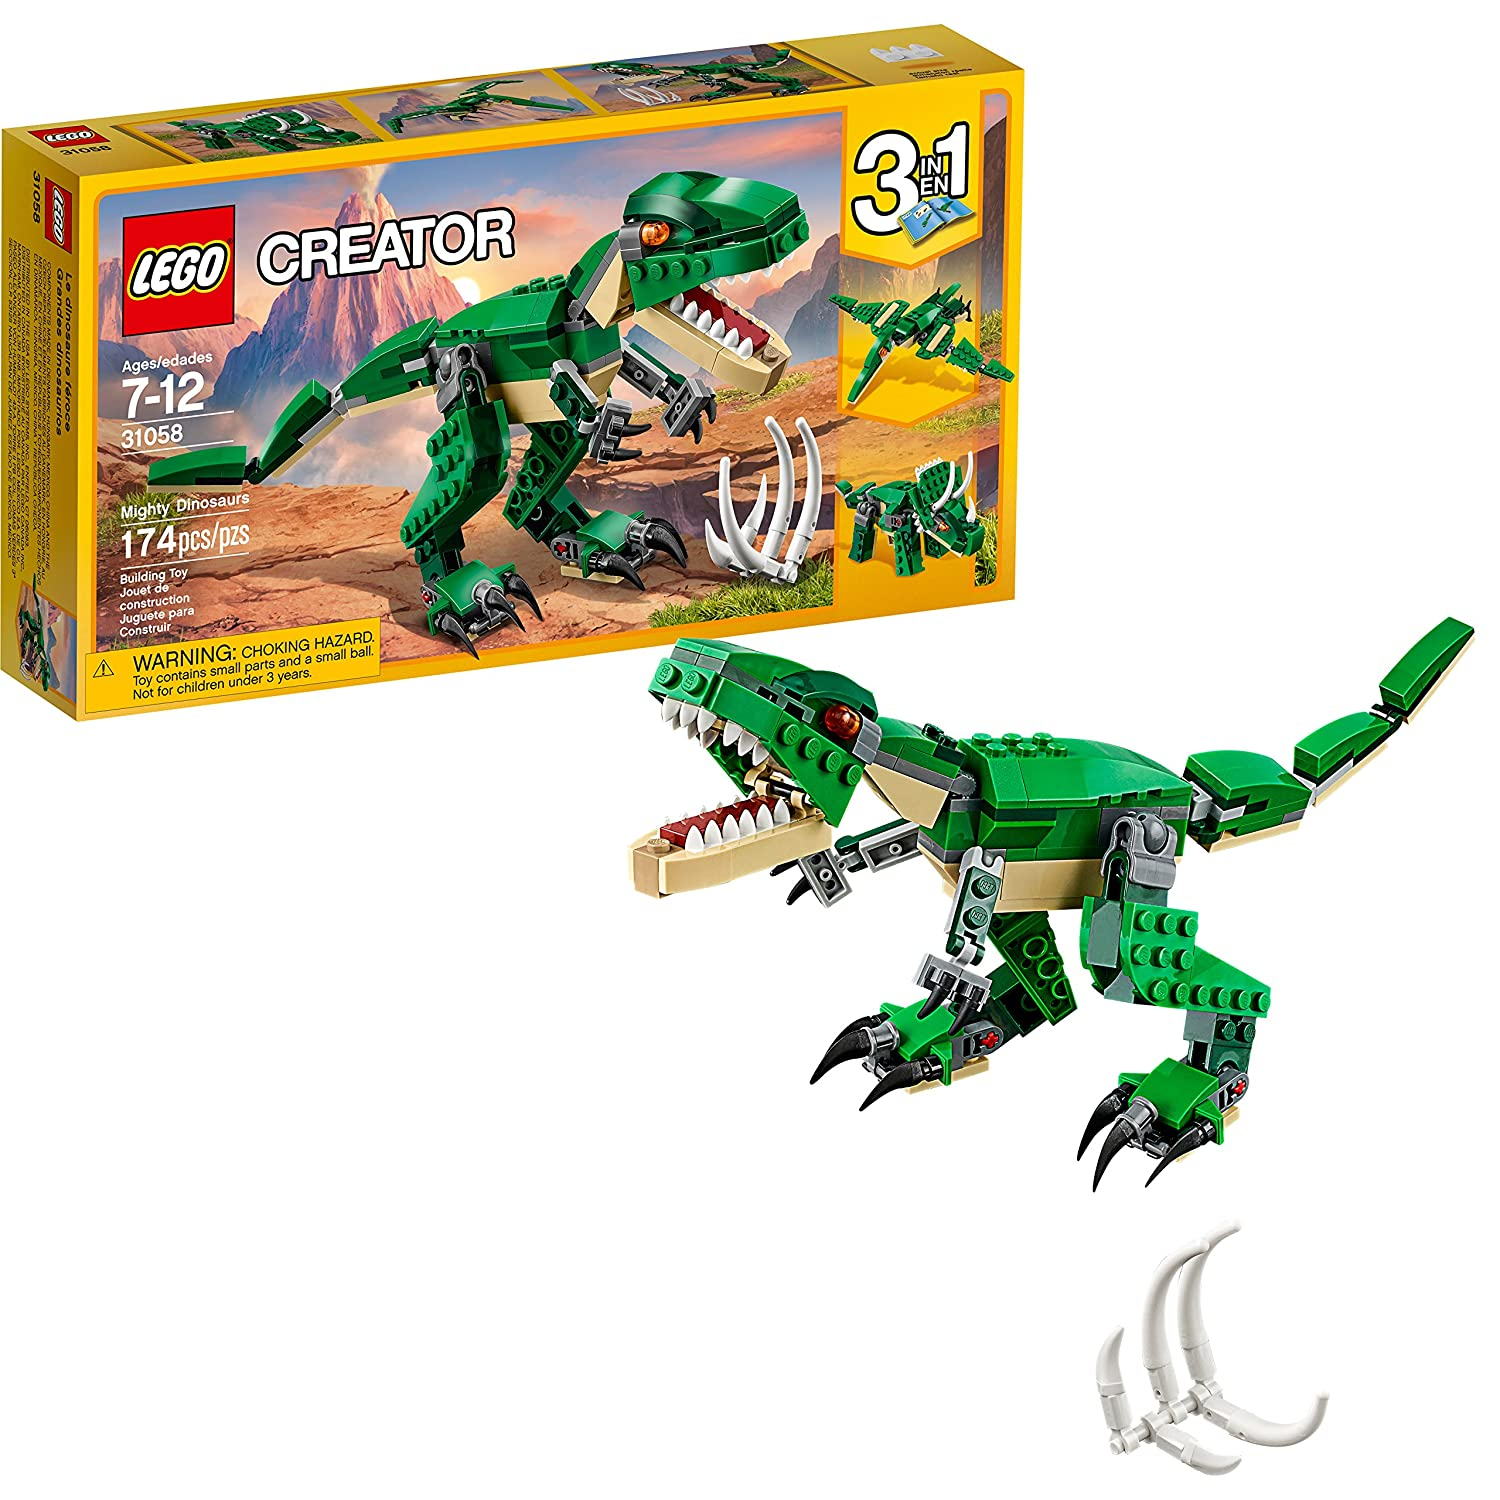 LEGO Creator Mighty Dinosaurs 31058 Build It Yourself Dinosaur Set, Create a Pterodactyl, Triceratops and T Rex Toy(174 Pieces)